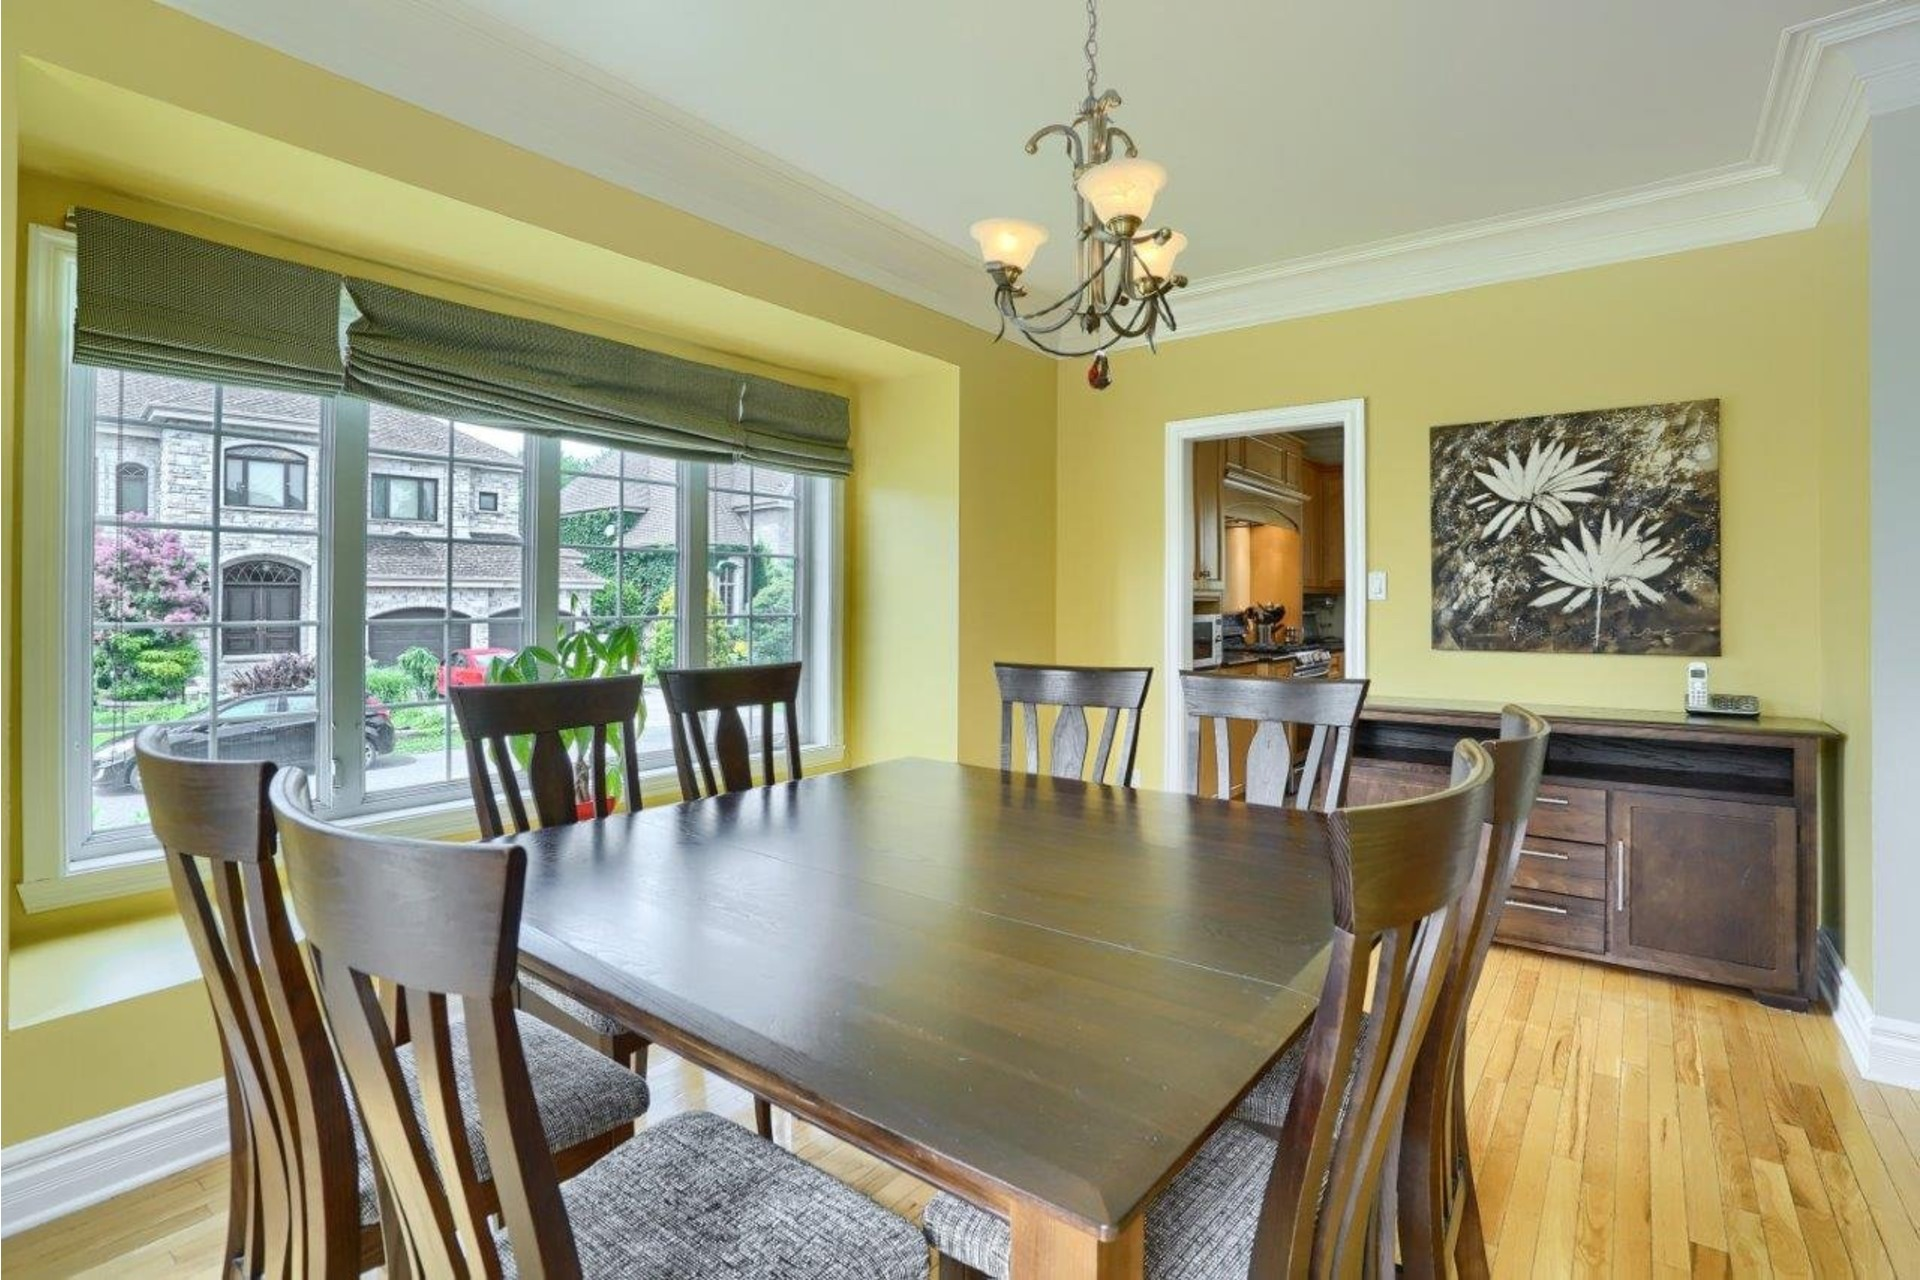 image 2 - House For sale Brossard - 12 rooms